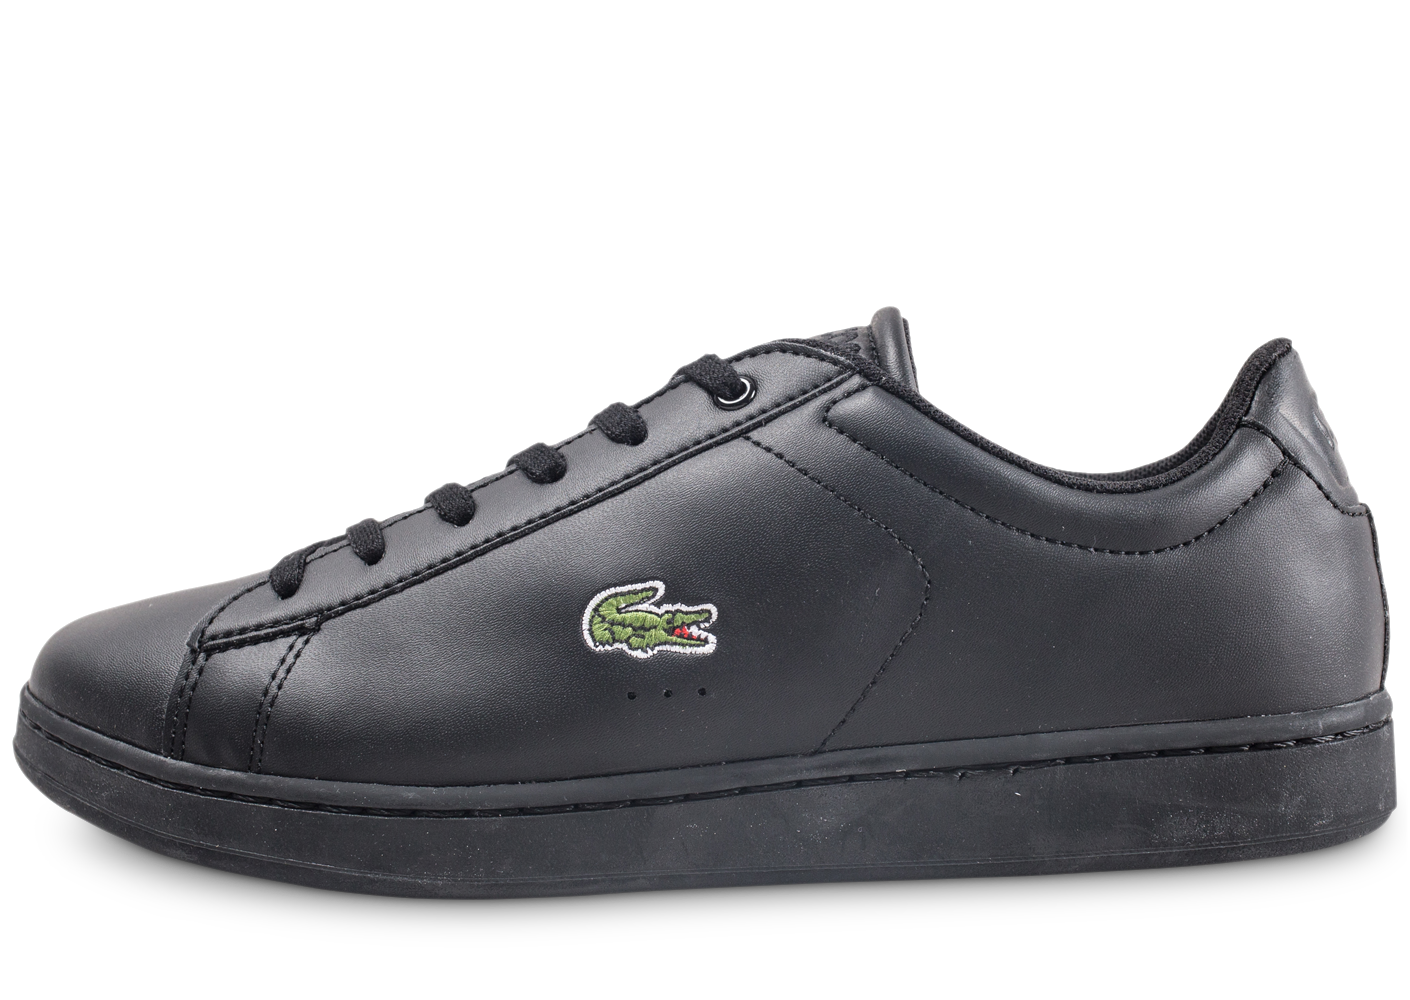 Jusqu'à Chaussures 42Pureshopping Fille Lacoste Chaussures